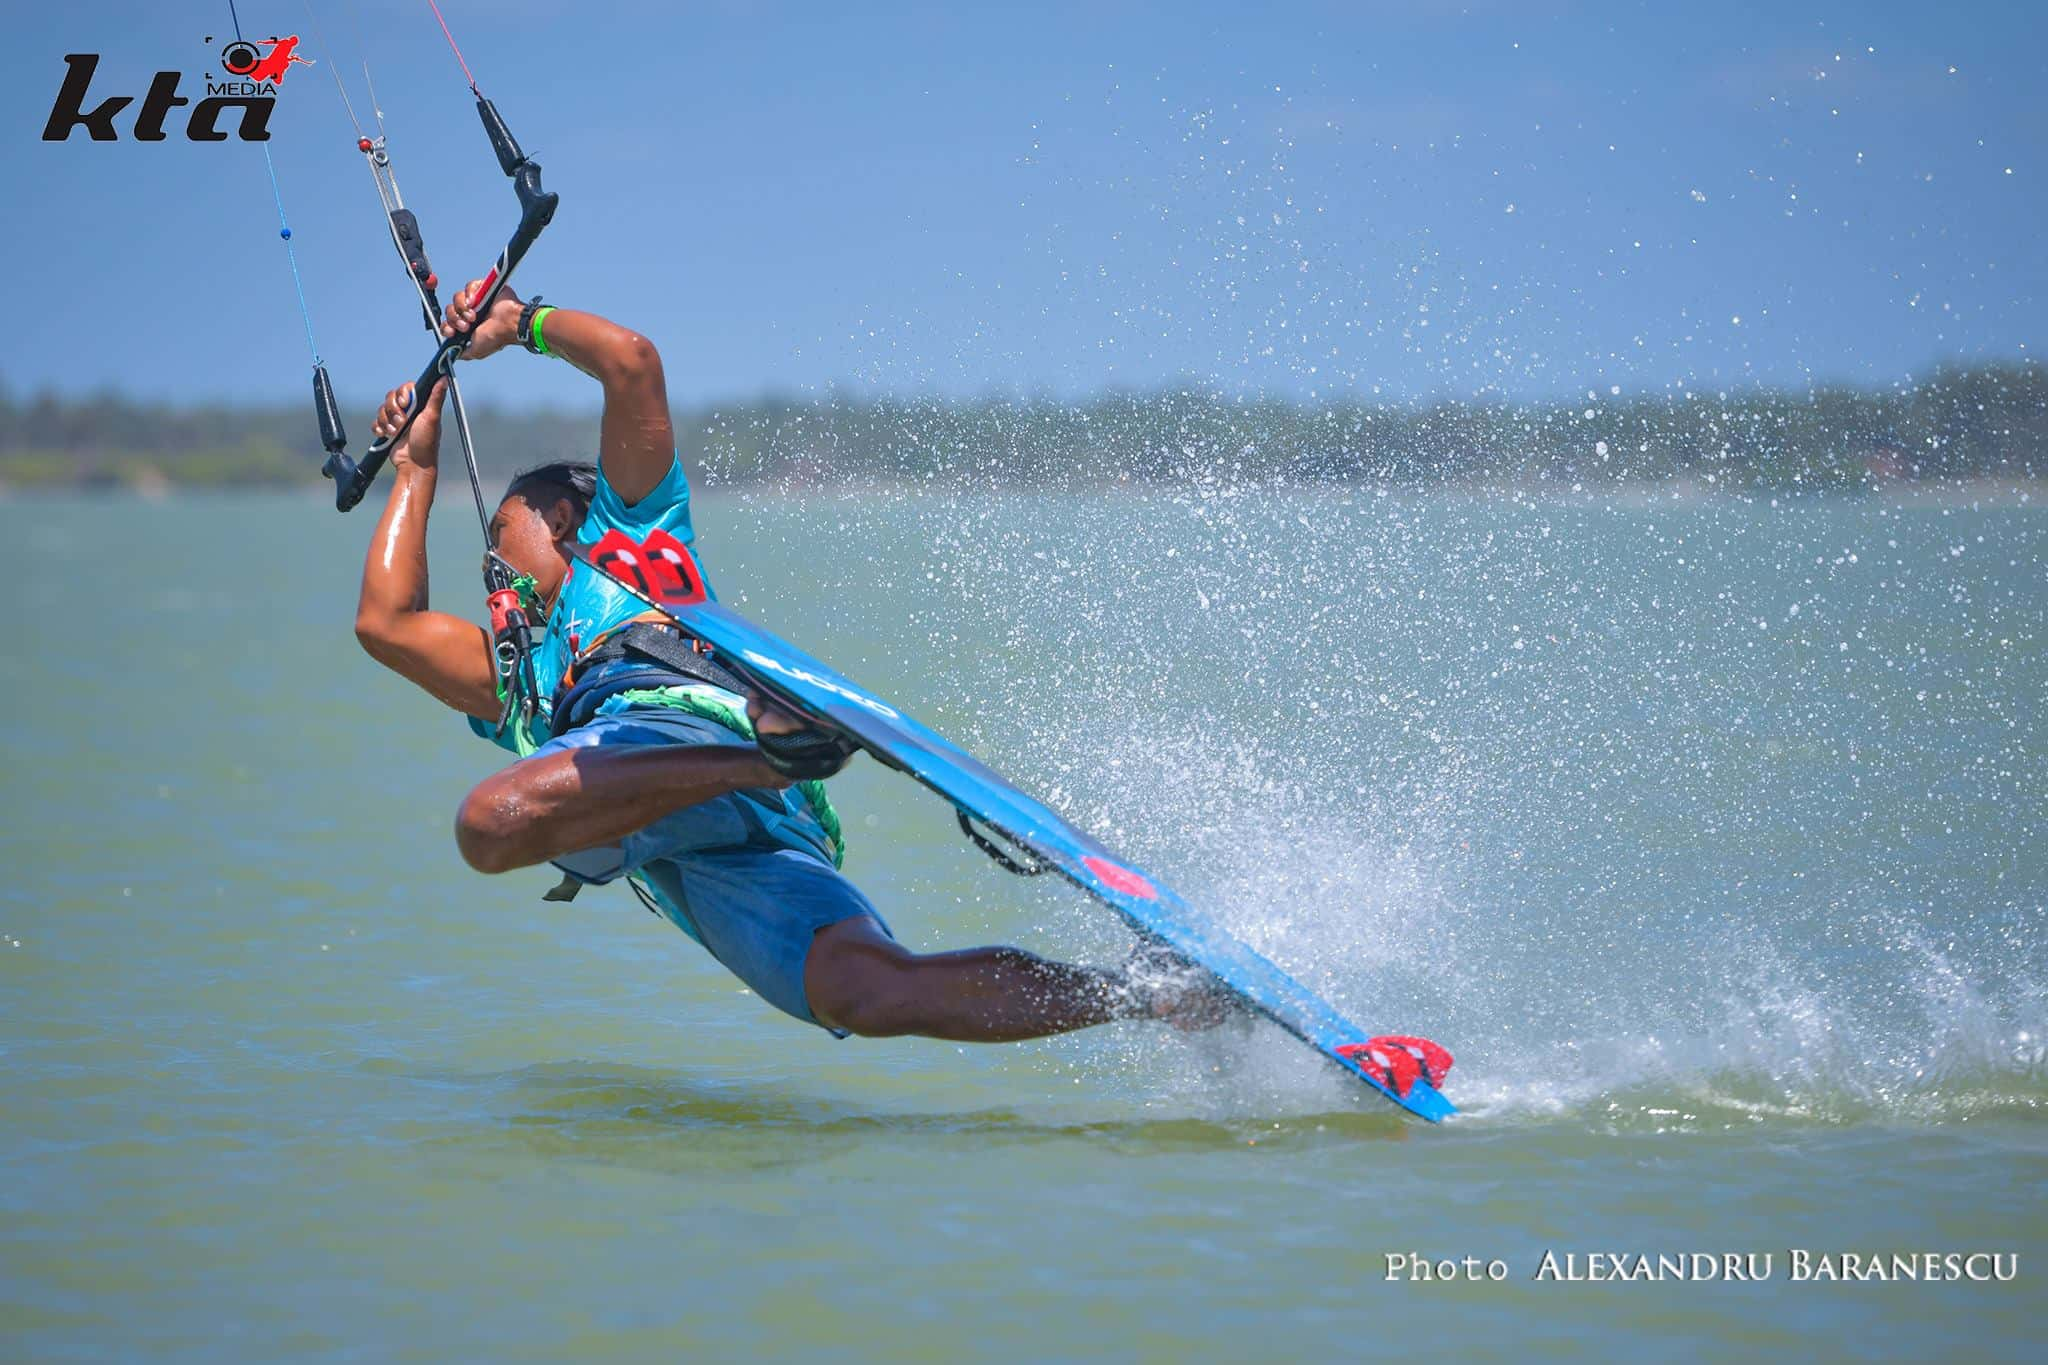 6 Kitesurfing Jobs You can Start A Side Business in Today